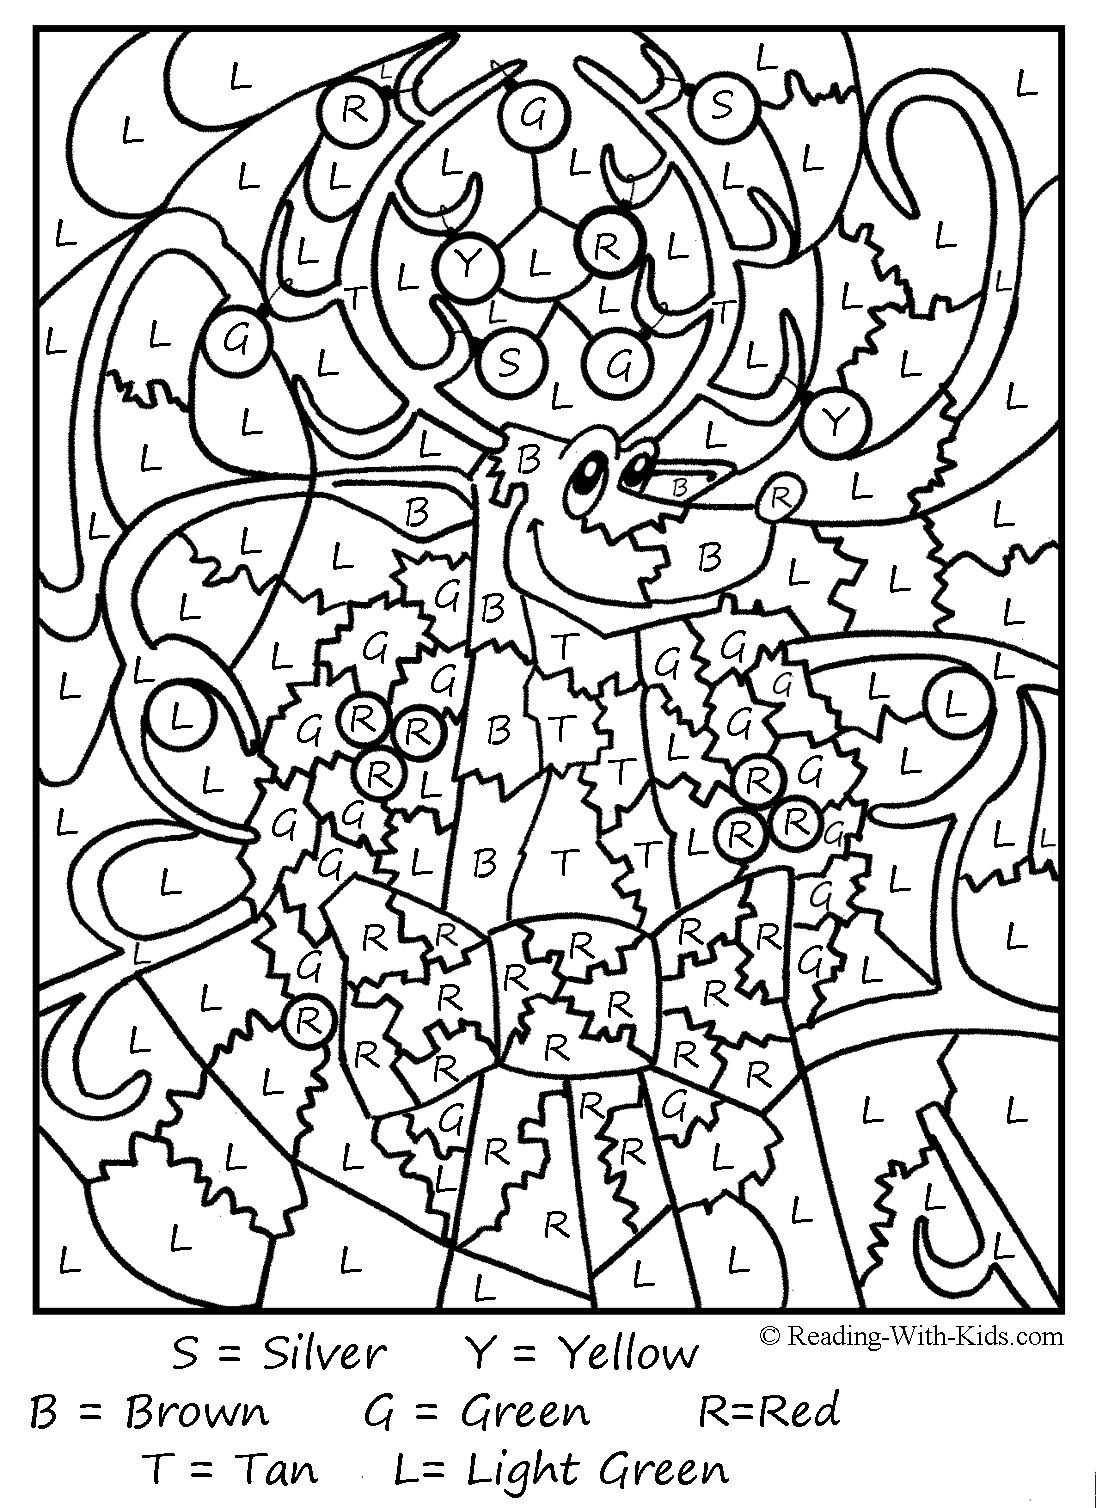 Color By Letter And Number Coloring Pages Are Fun Educational The Instructions Simple To Determine Of Each Space